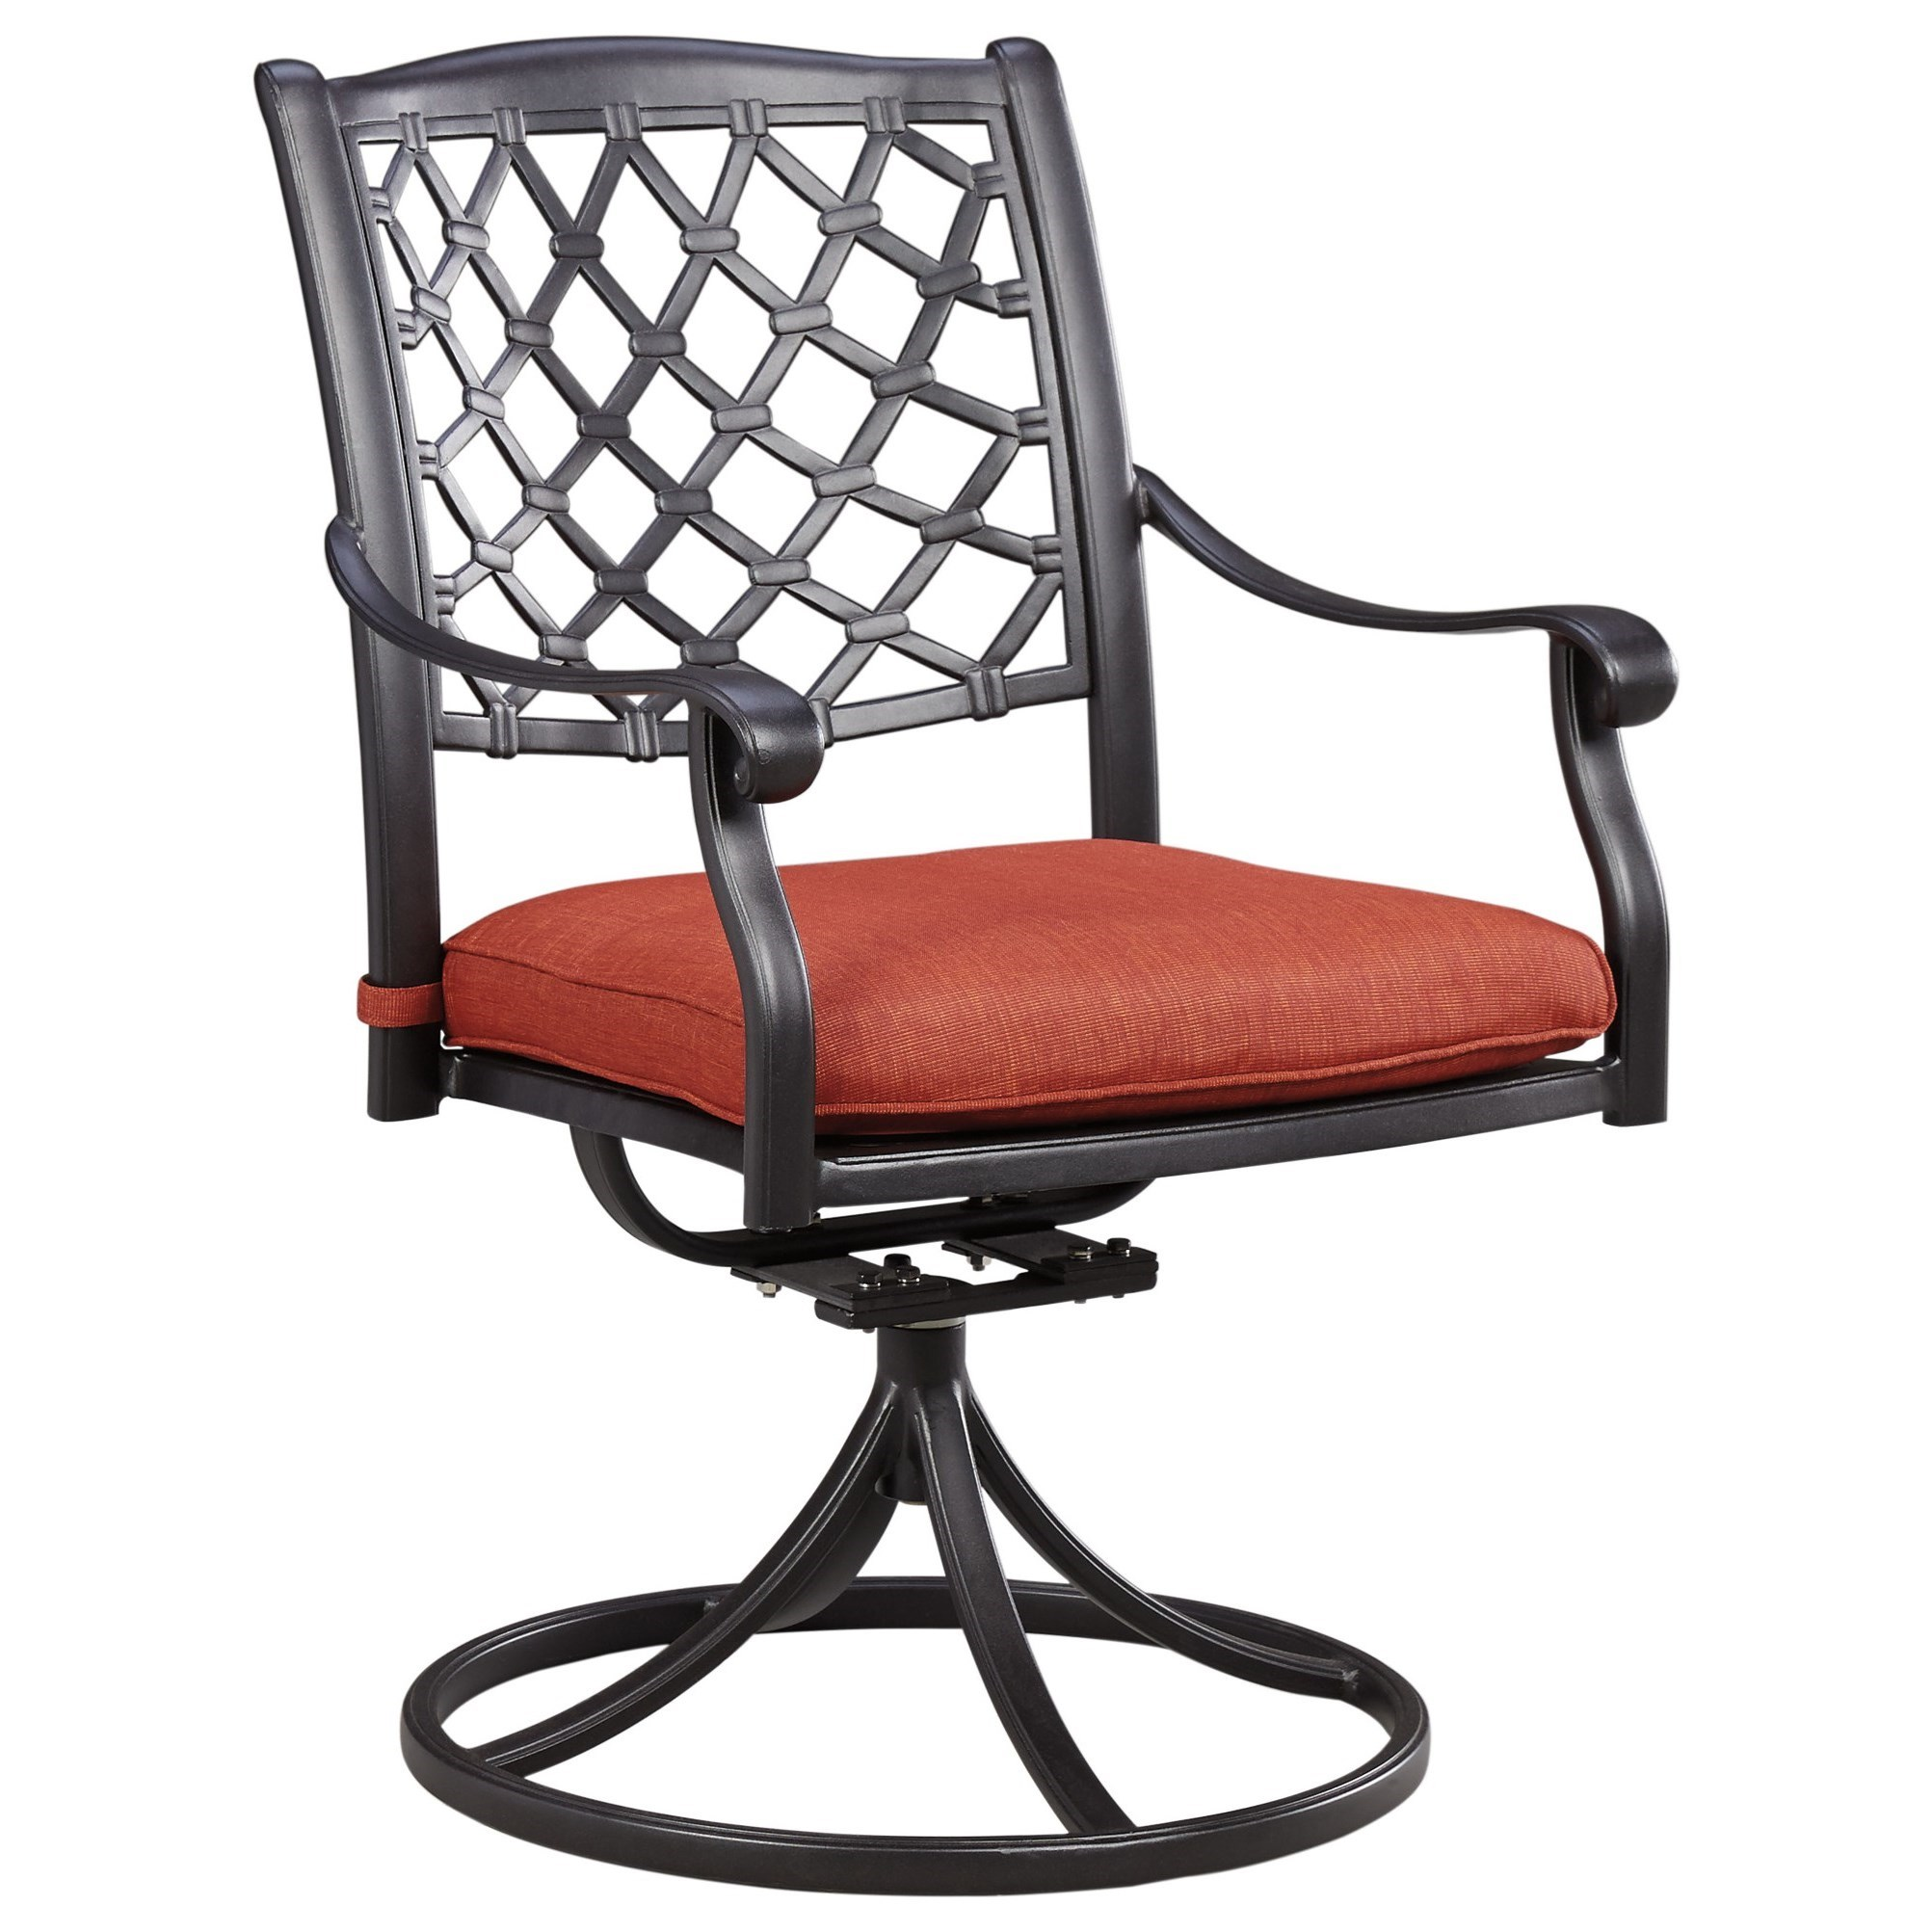 Tanglevale Set of 2 Outdoor Swivel Chairs w/ Cushion by Signature Design by Ashley at Lapeer Furniture & Mattress Center